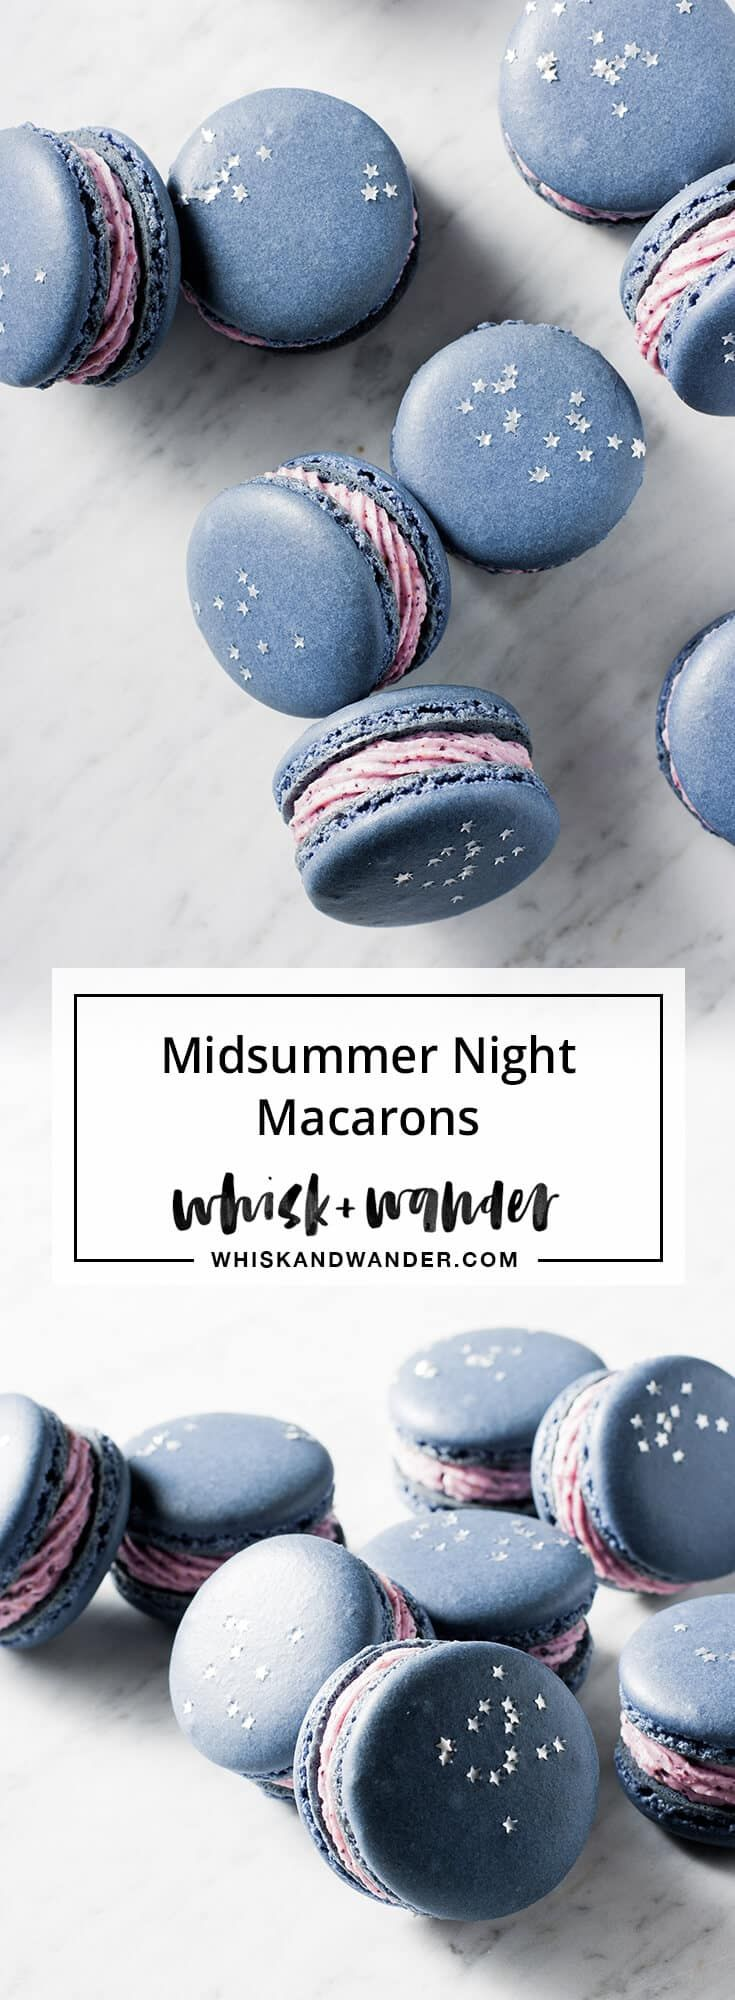 Blueberry Macarons. Midsummer night macarons filled with blueberry buttercream & decorated with edible stars. Macaron recipe for high humidity.